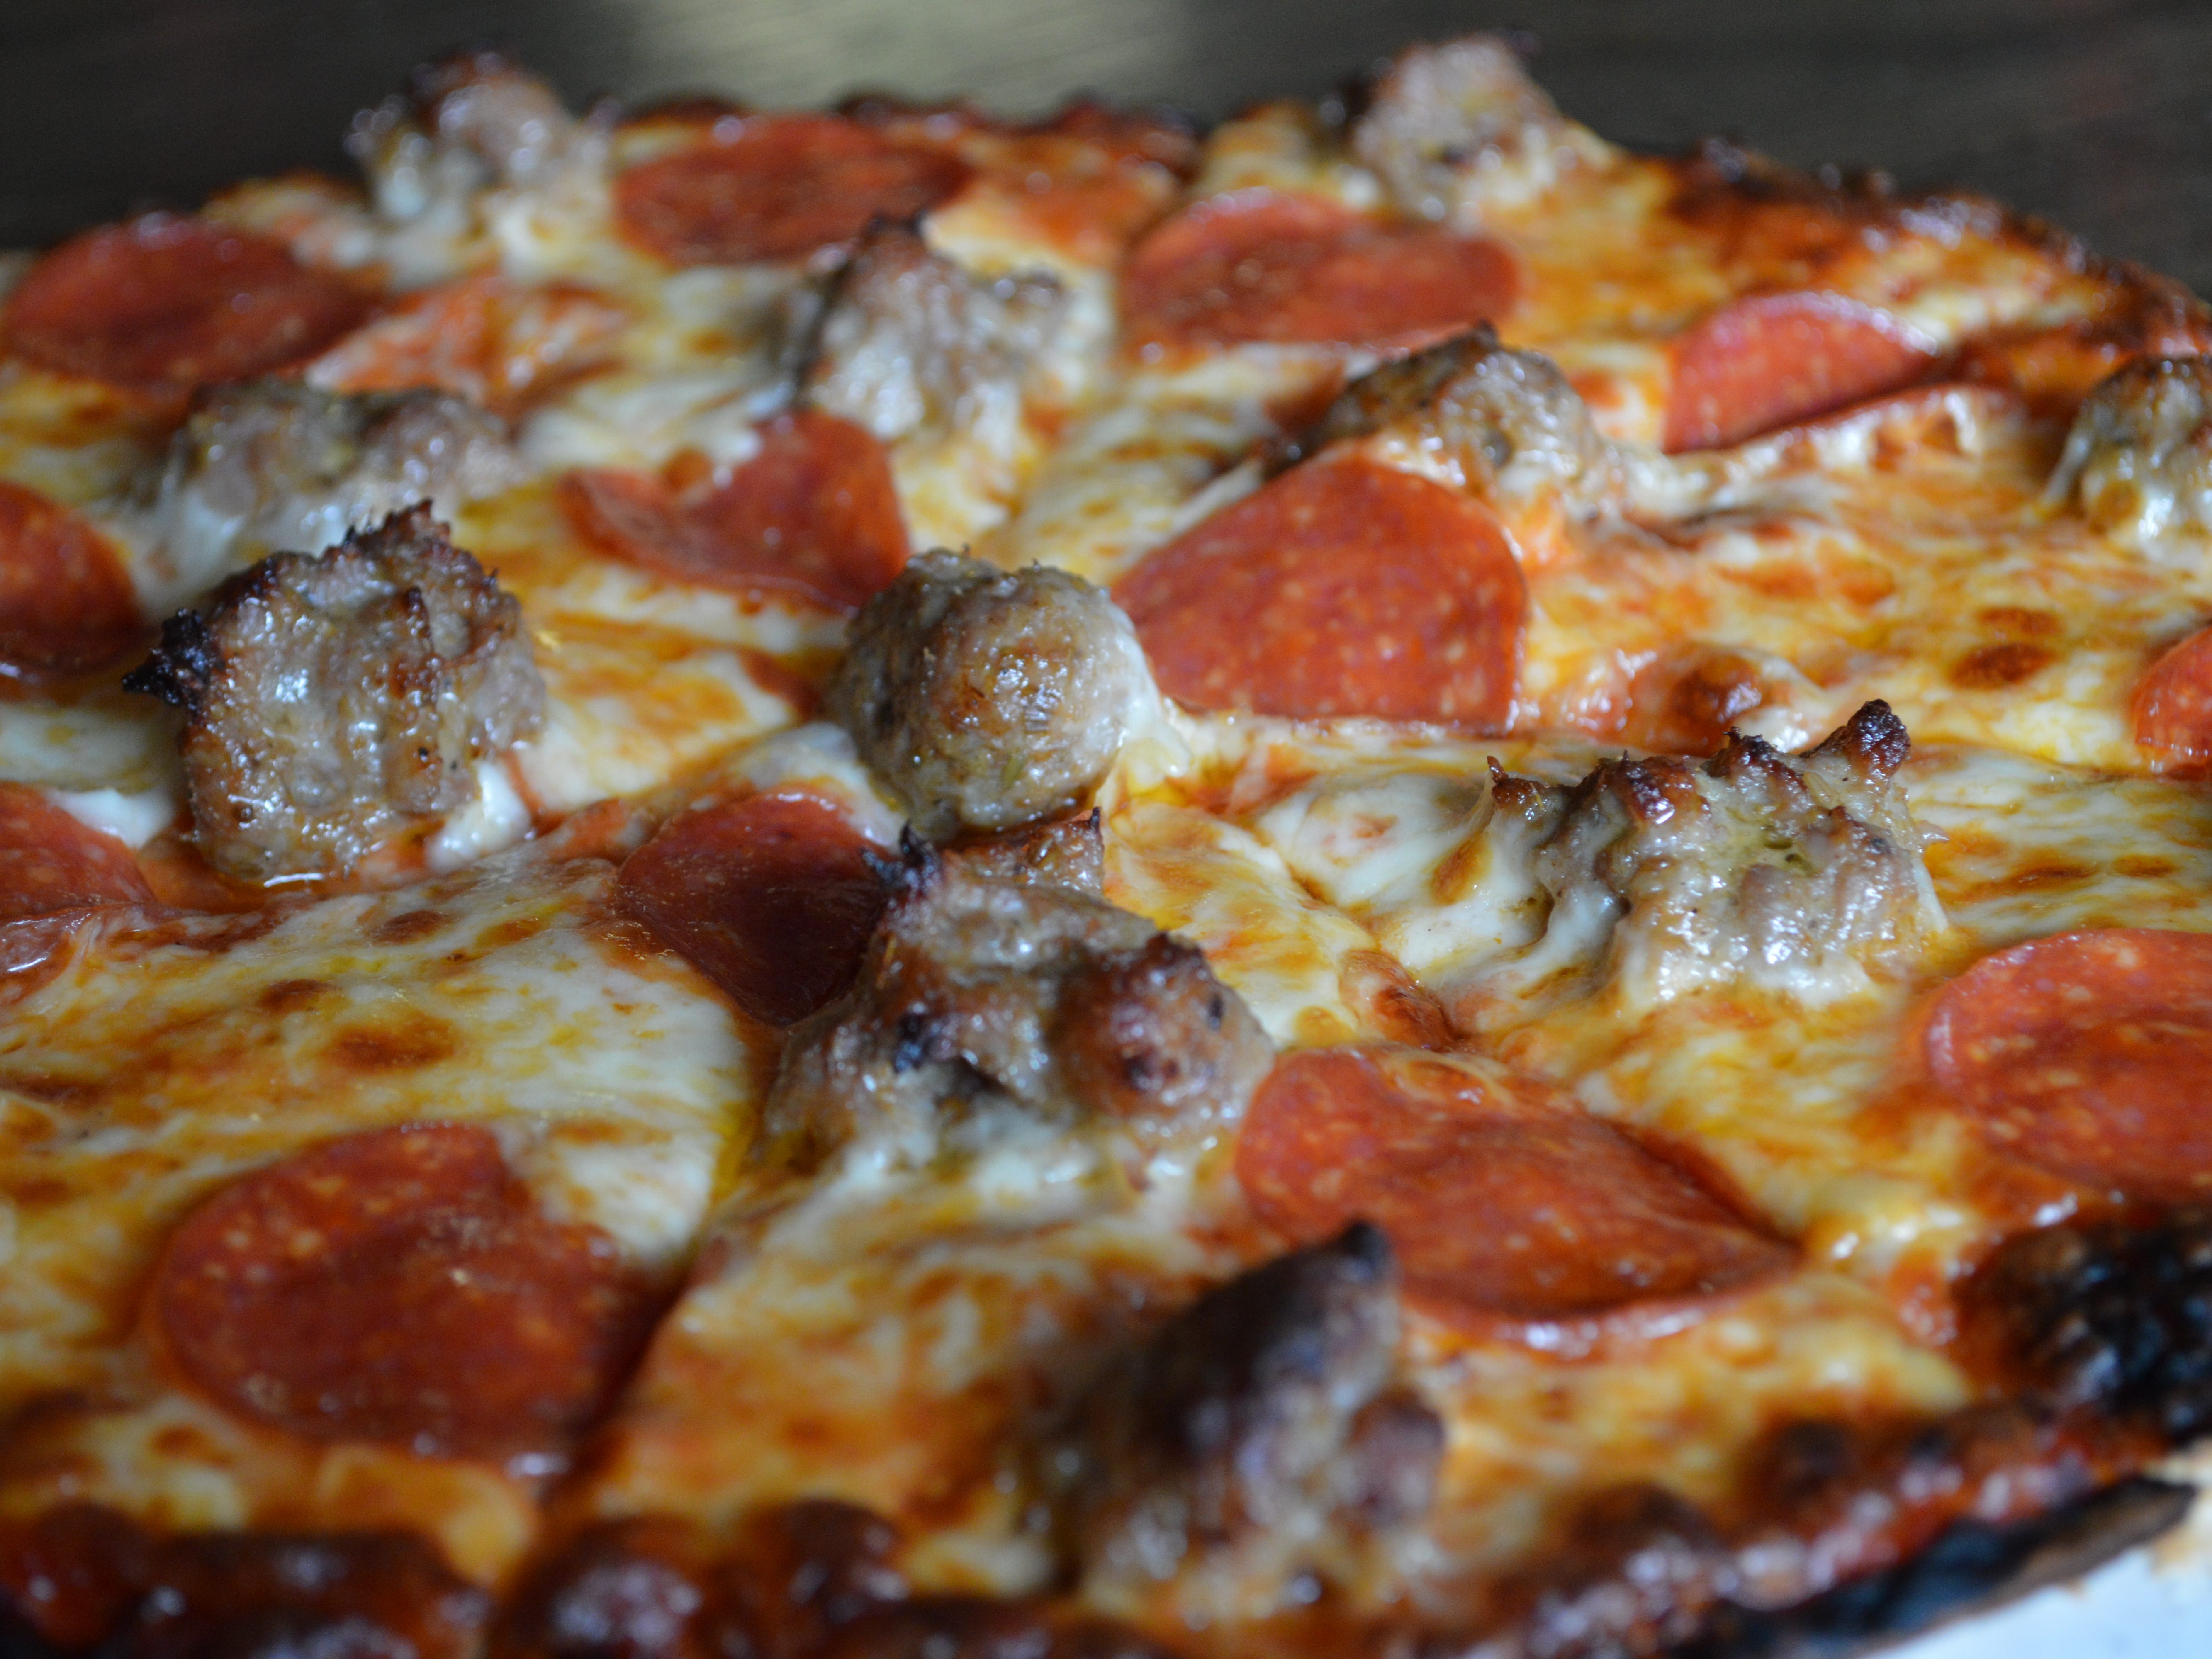 Limanski's Pub's sausage and pepperoni pizza has a homemade thin crust with San Marzano tomato sauce, mozzerella cheese, pepperoni and sausage. It costs $12 for a 12-inch.